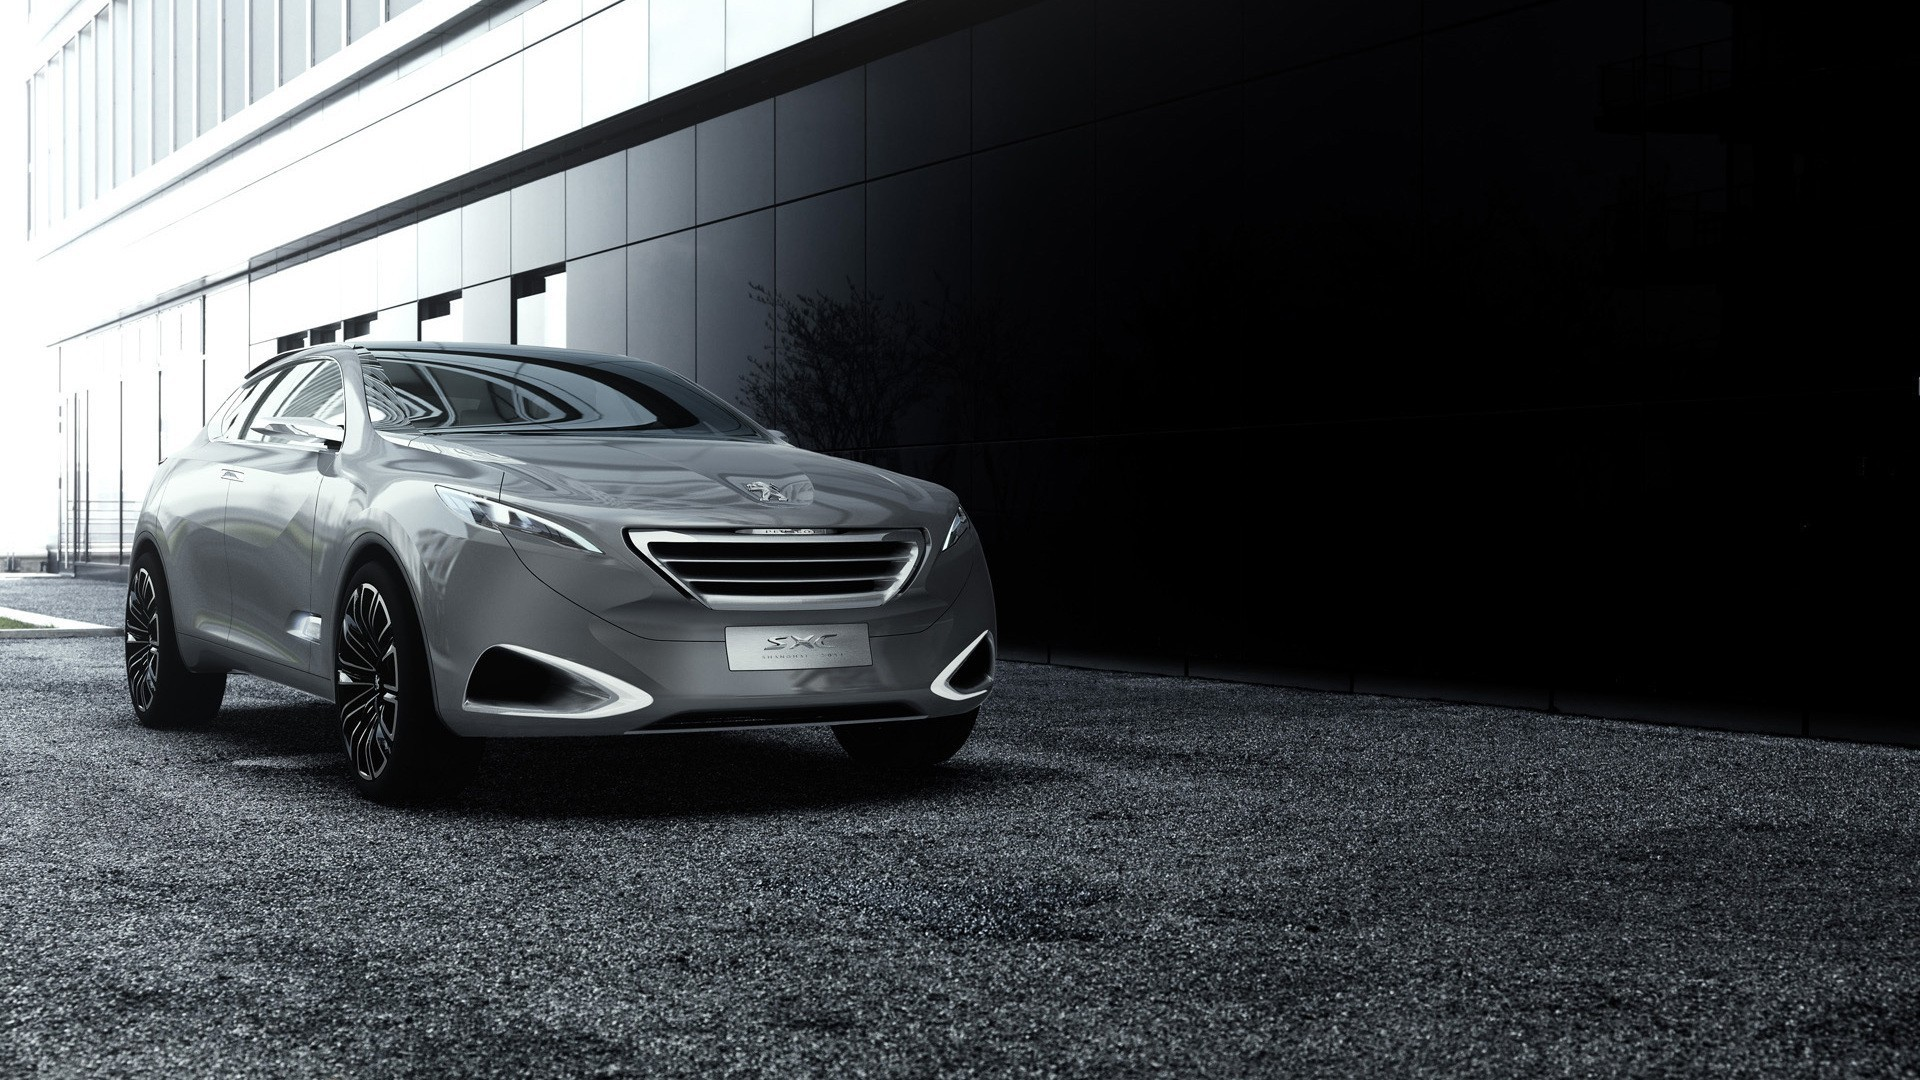 Peugeot sxc cars best HD Wallpaper